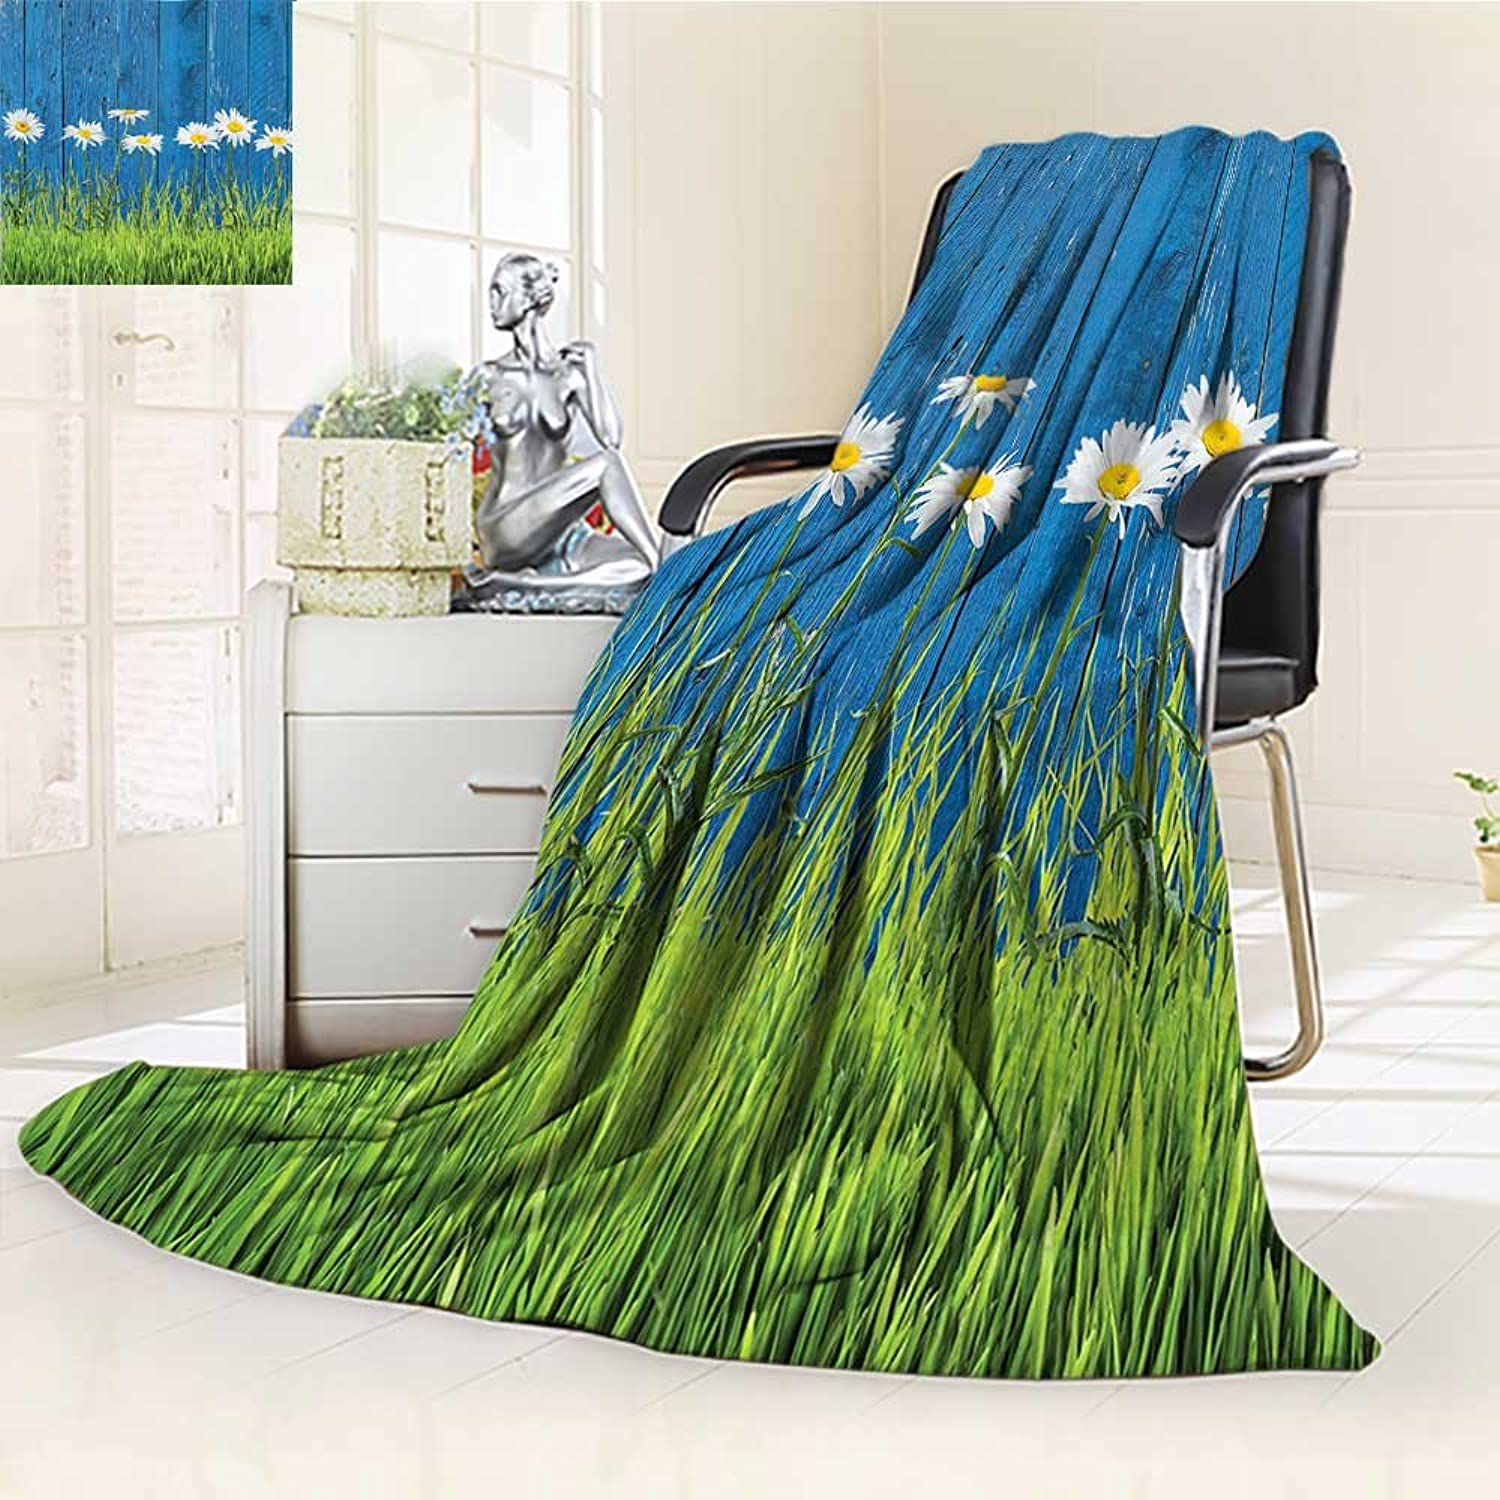 YOYIHOME Digital Printing Duplex Printed Blanket Grass and Daisy On A Fence Summer Simple Vintage Style Print bluee Green White Summer Quilt Comforter  W47 x H59